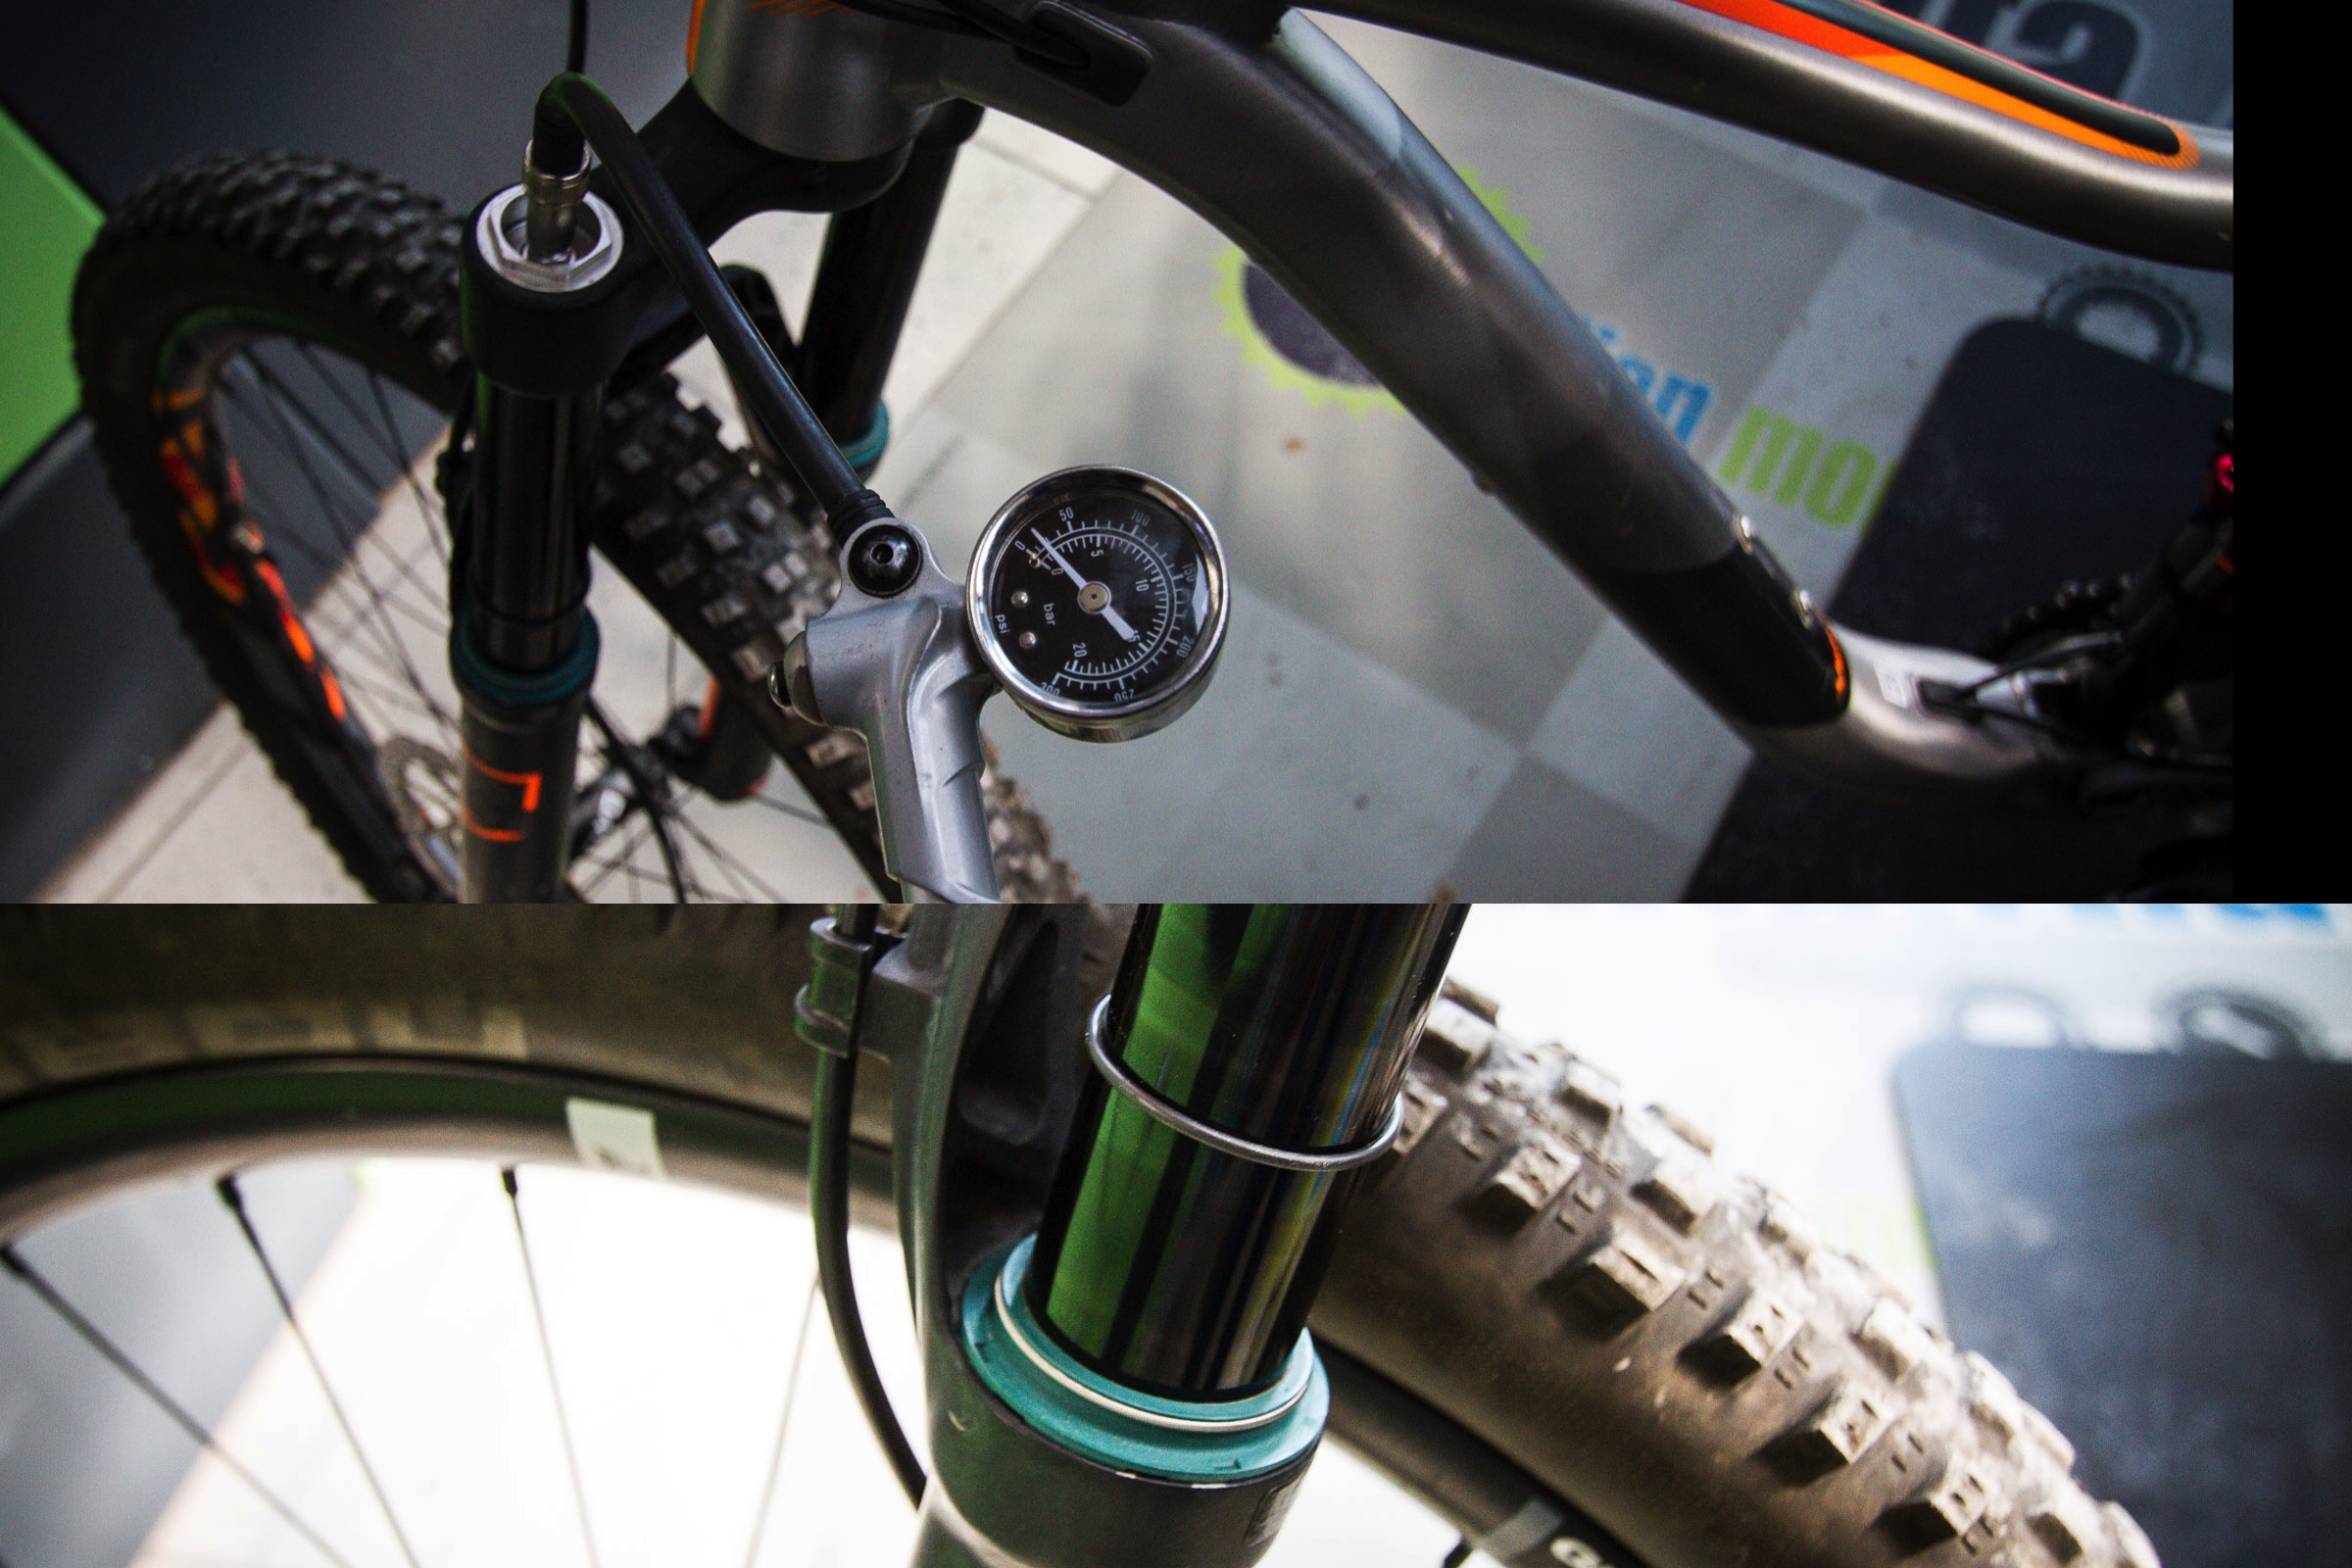 We check the front fork sag setting, here we are aiming for a 30 percent starting point. Air pressure is according to rider weight and style of riding. Aggressive riders tend to set their fork harder.